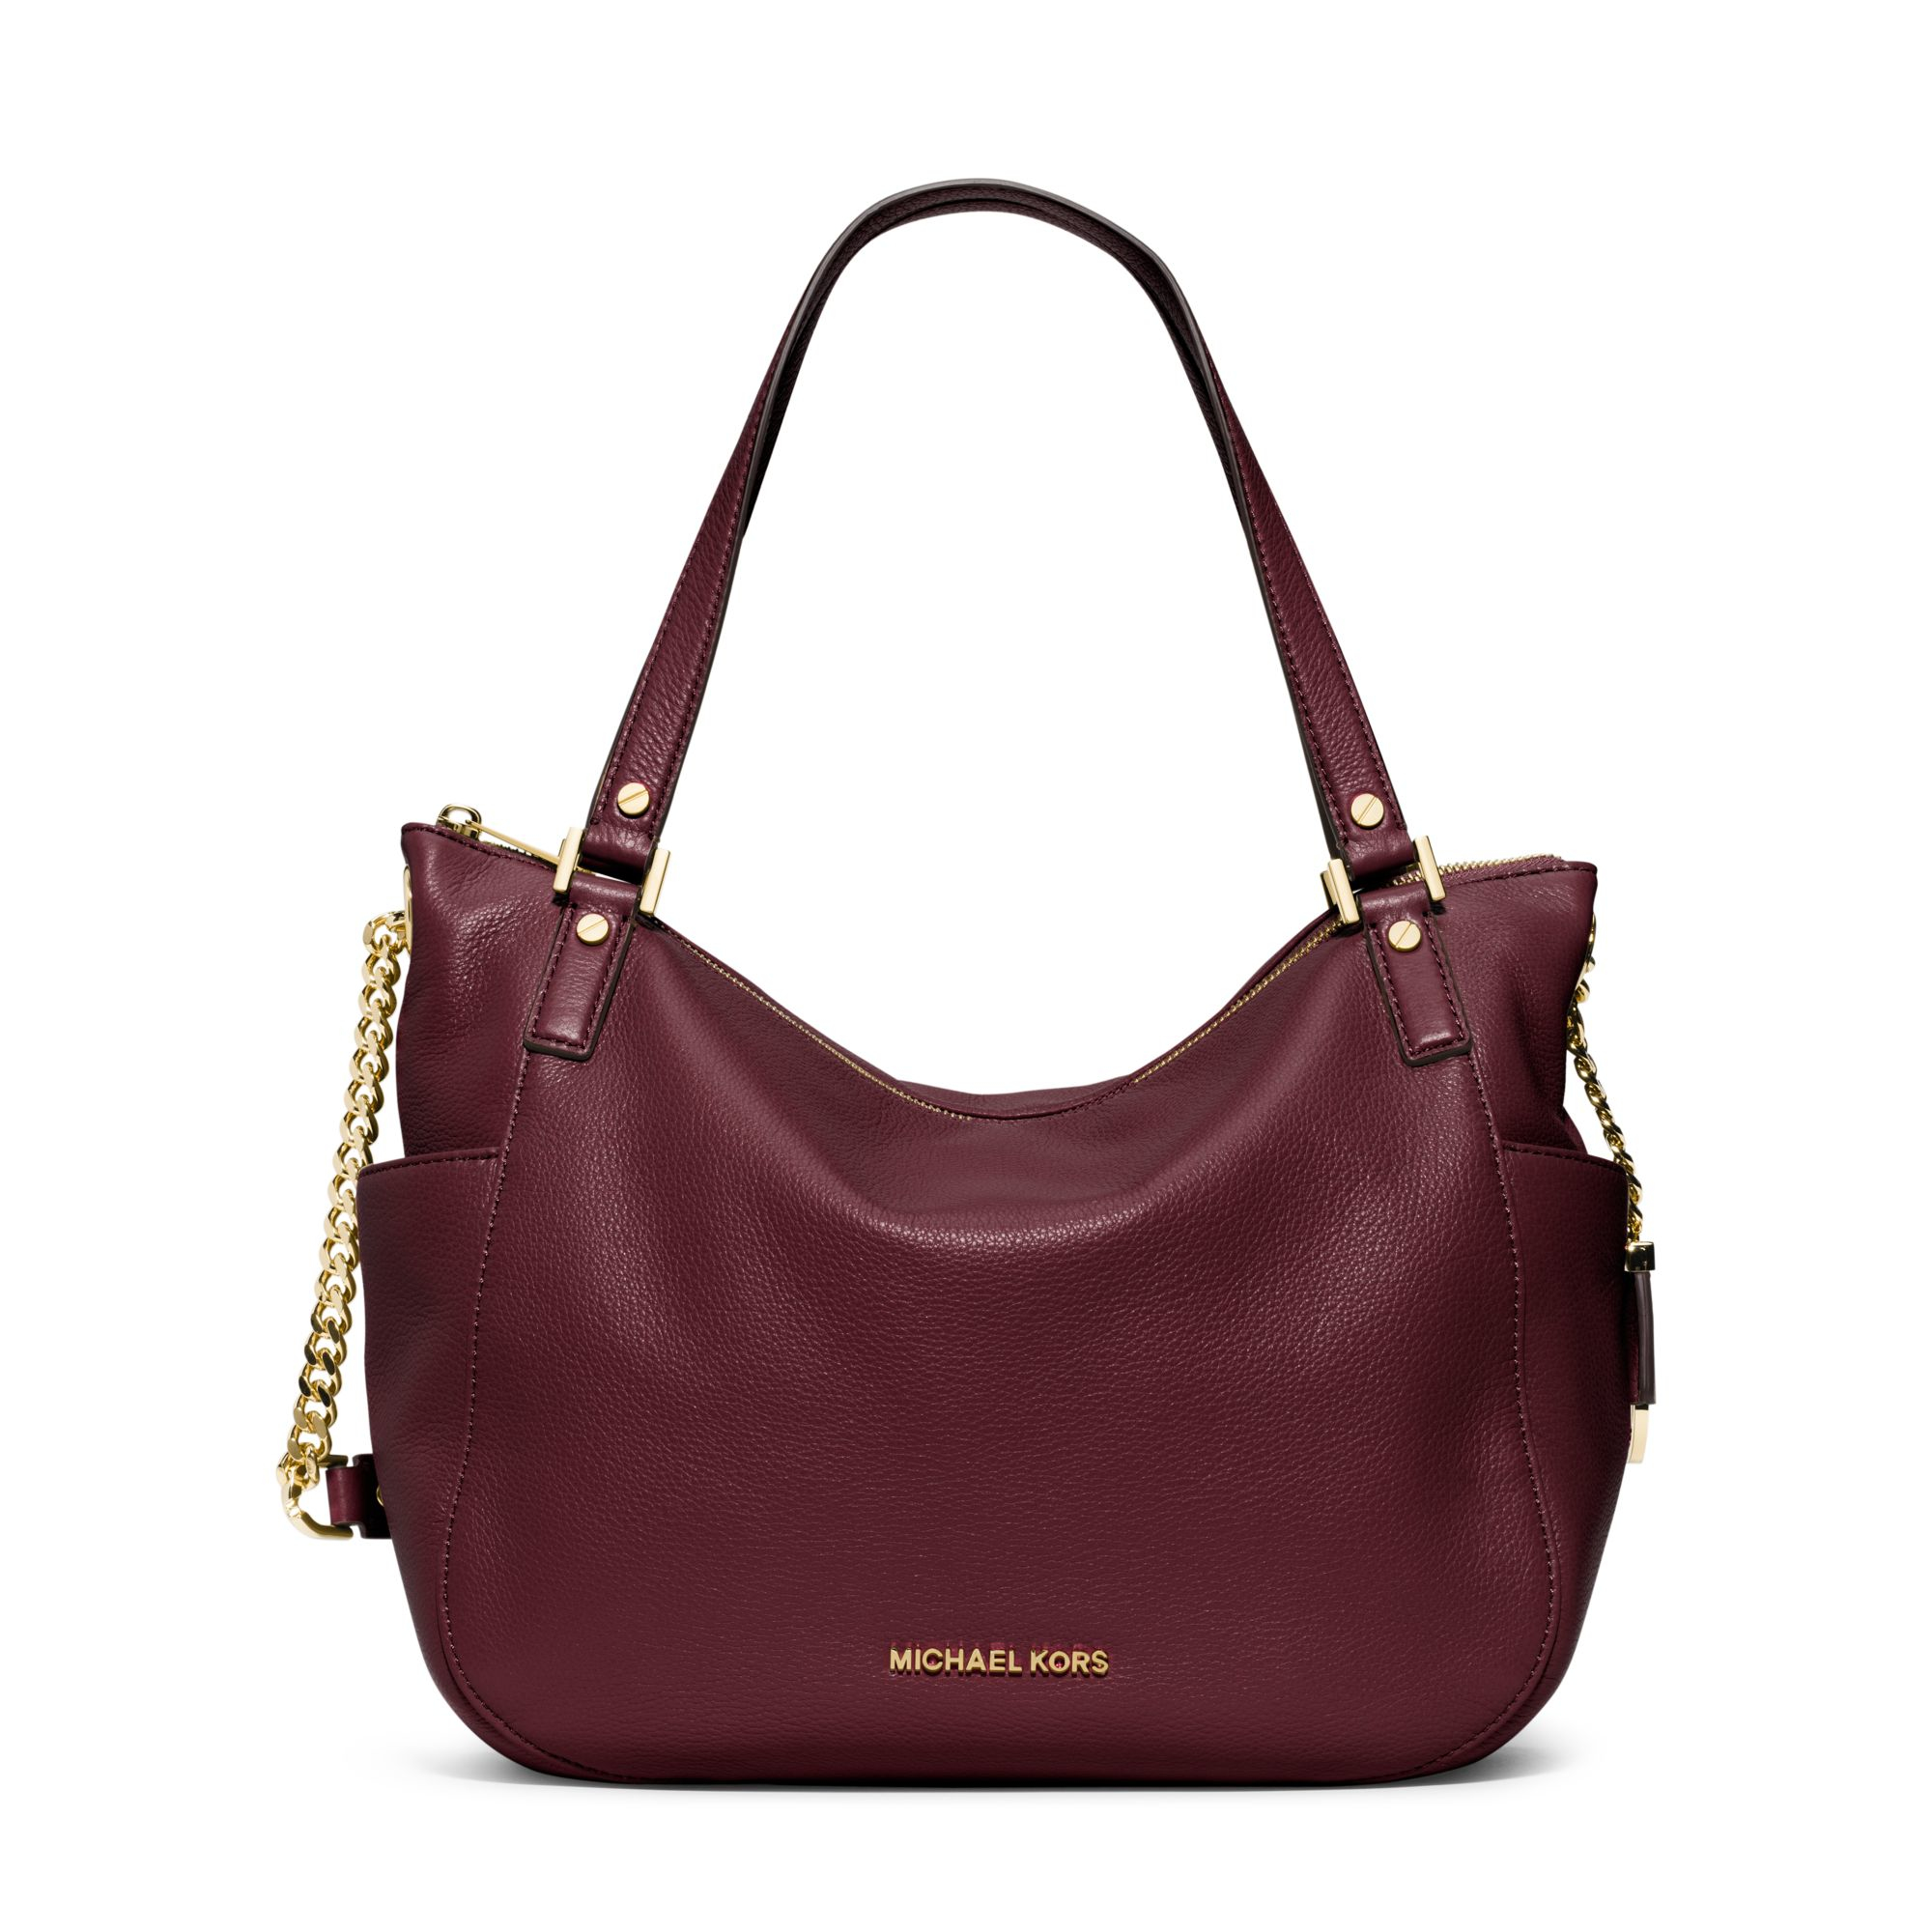 Michael kors Chandler Large Leather Tote in Purple | Lyst